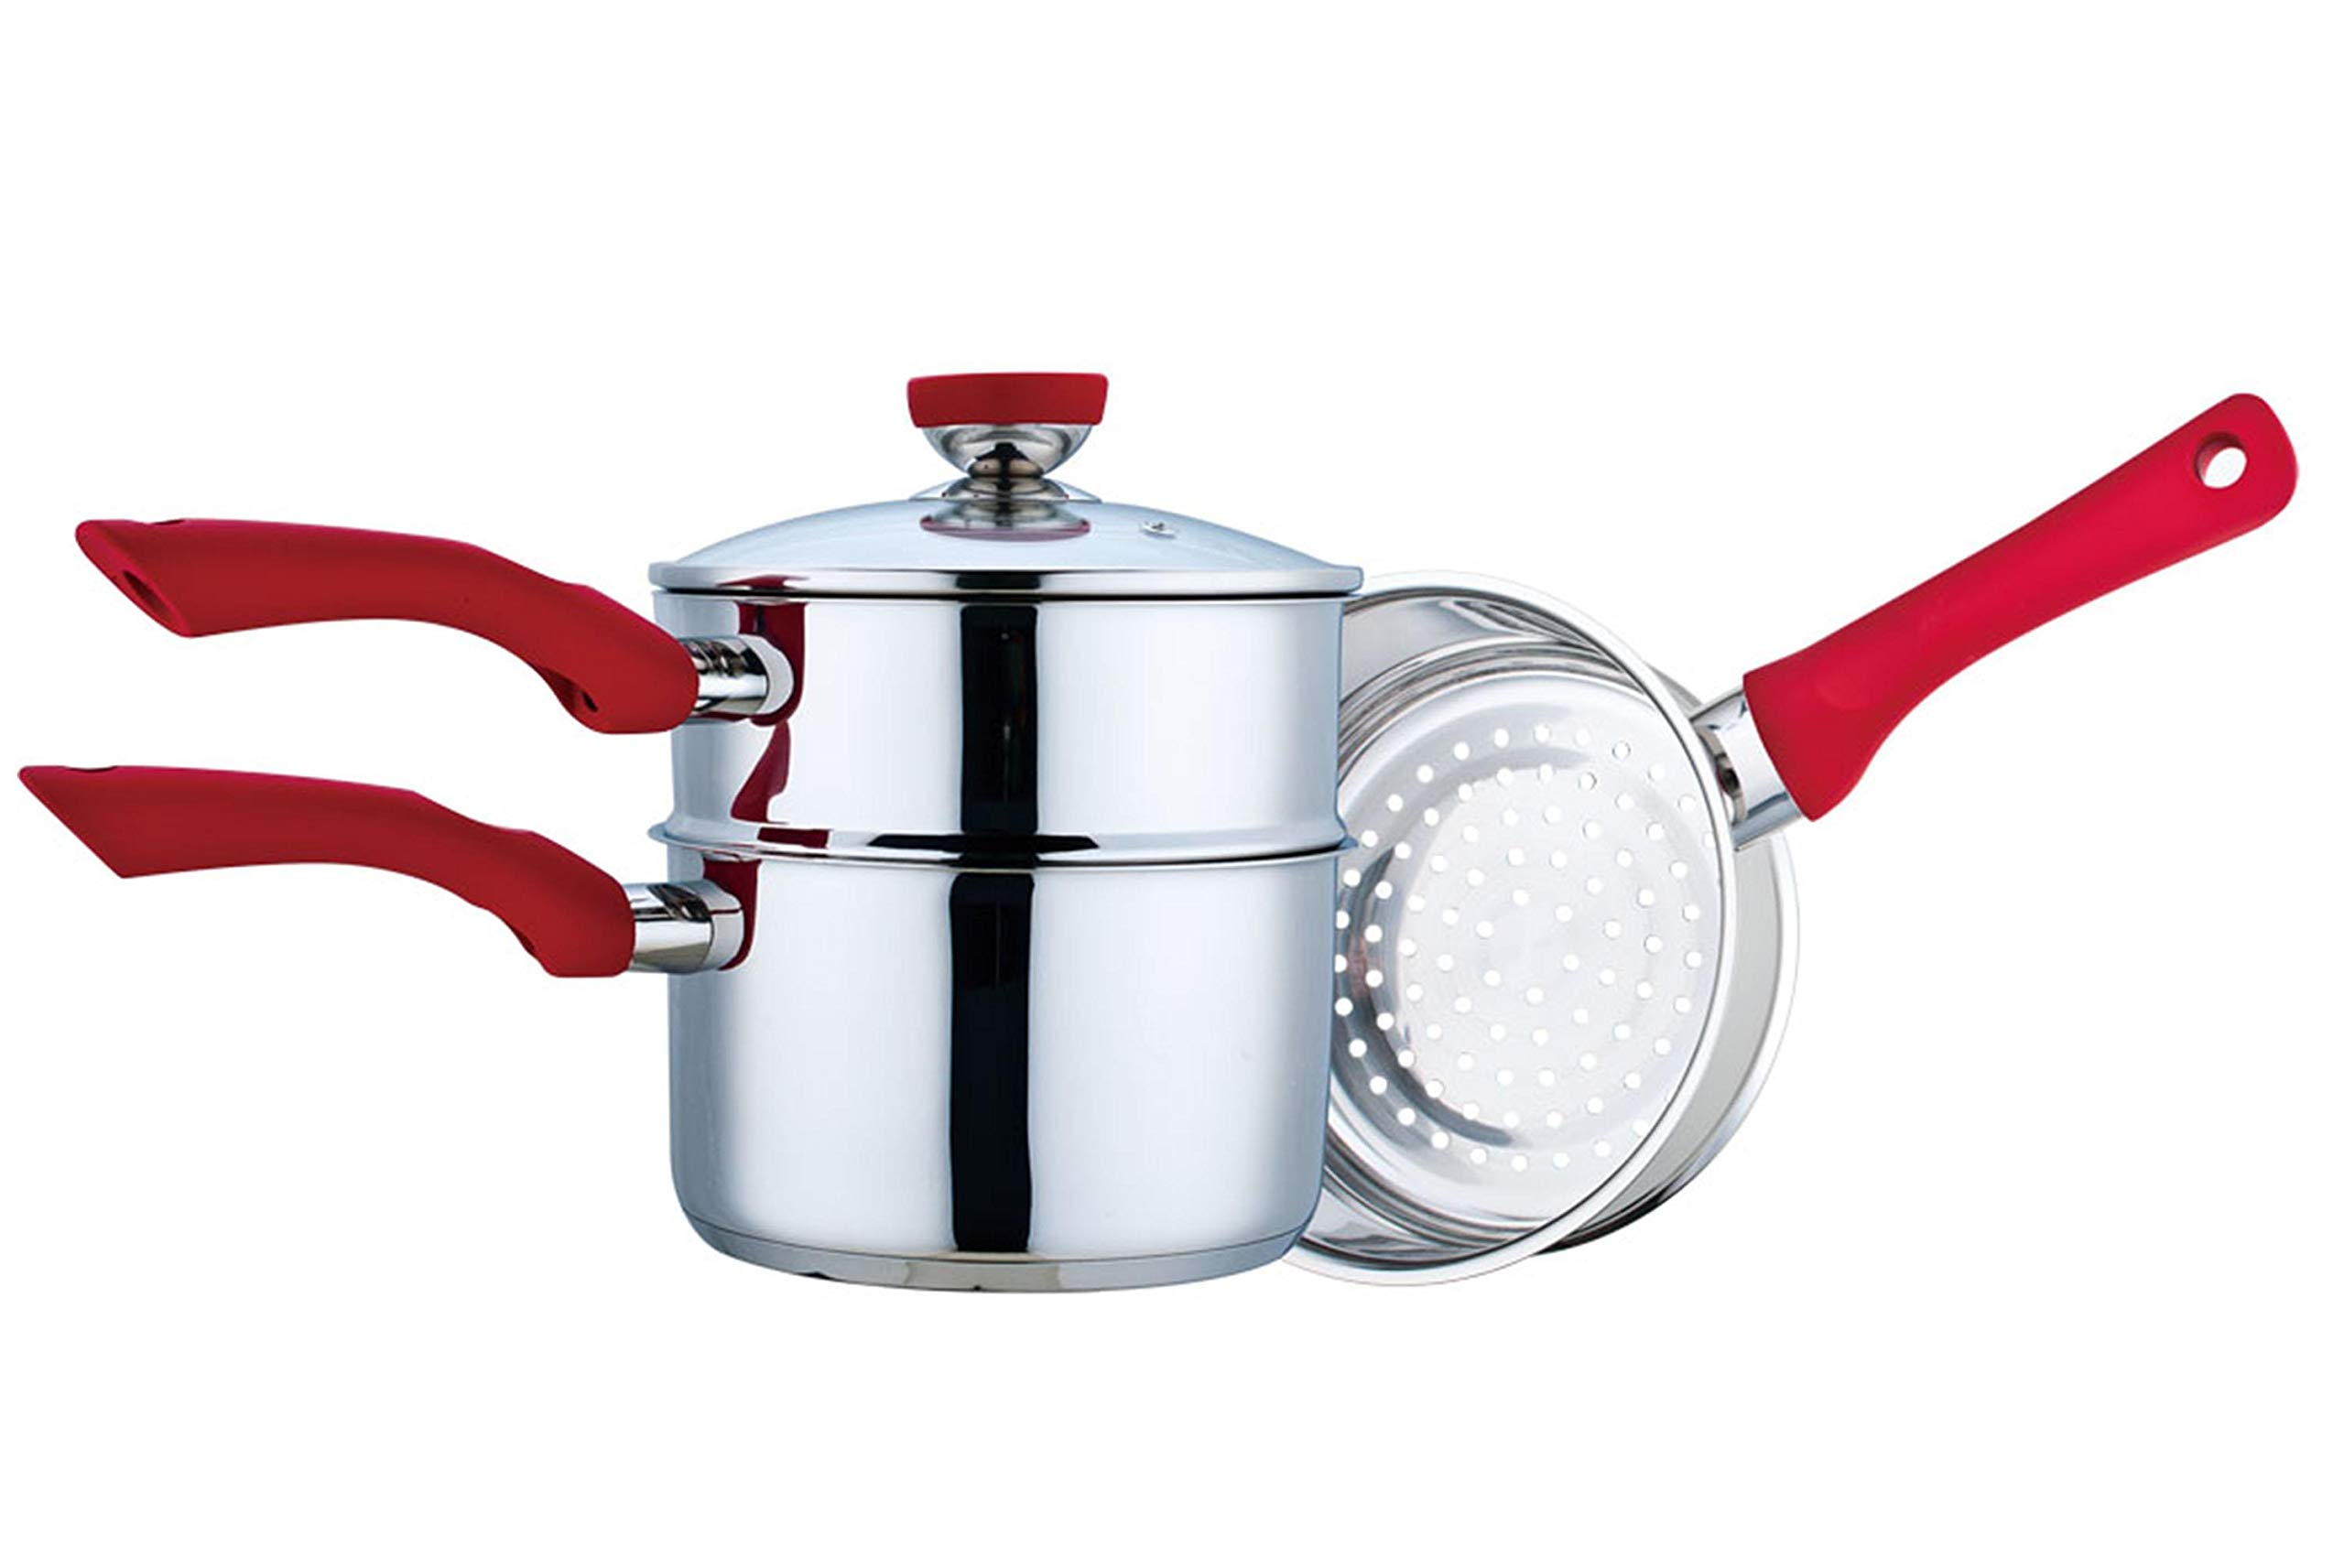 Culinary Edge Stainless Steel Nonstick 4-Piece Double Boiler Set Saucepan and Steamer